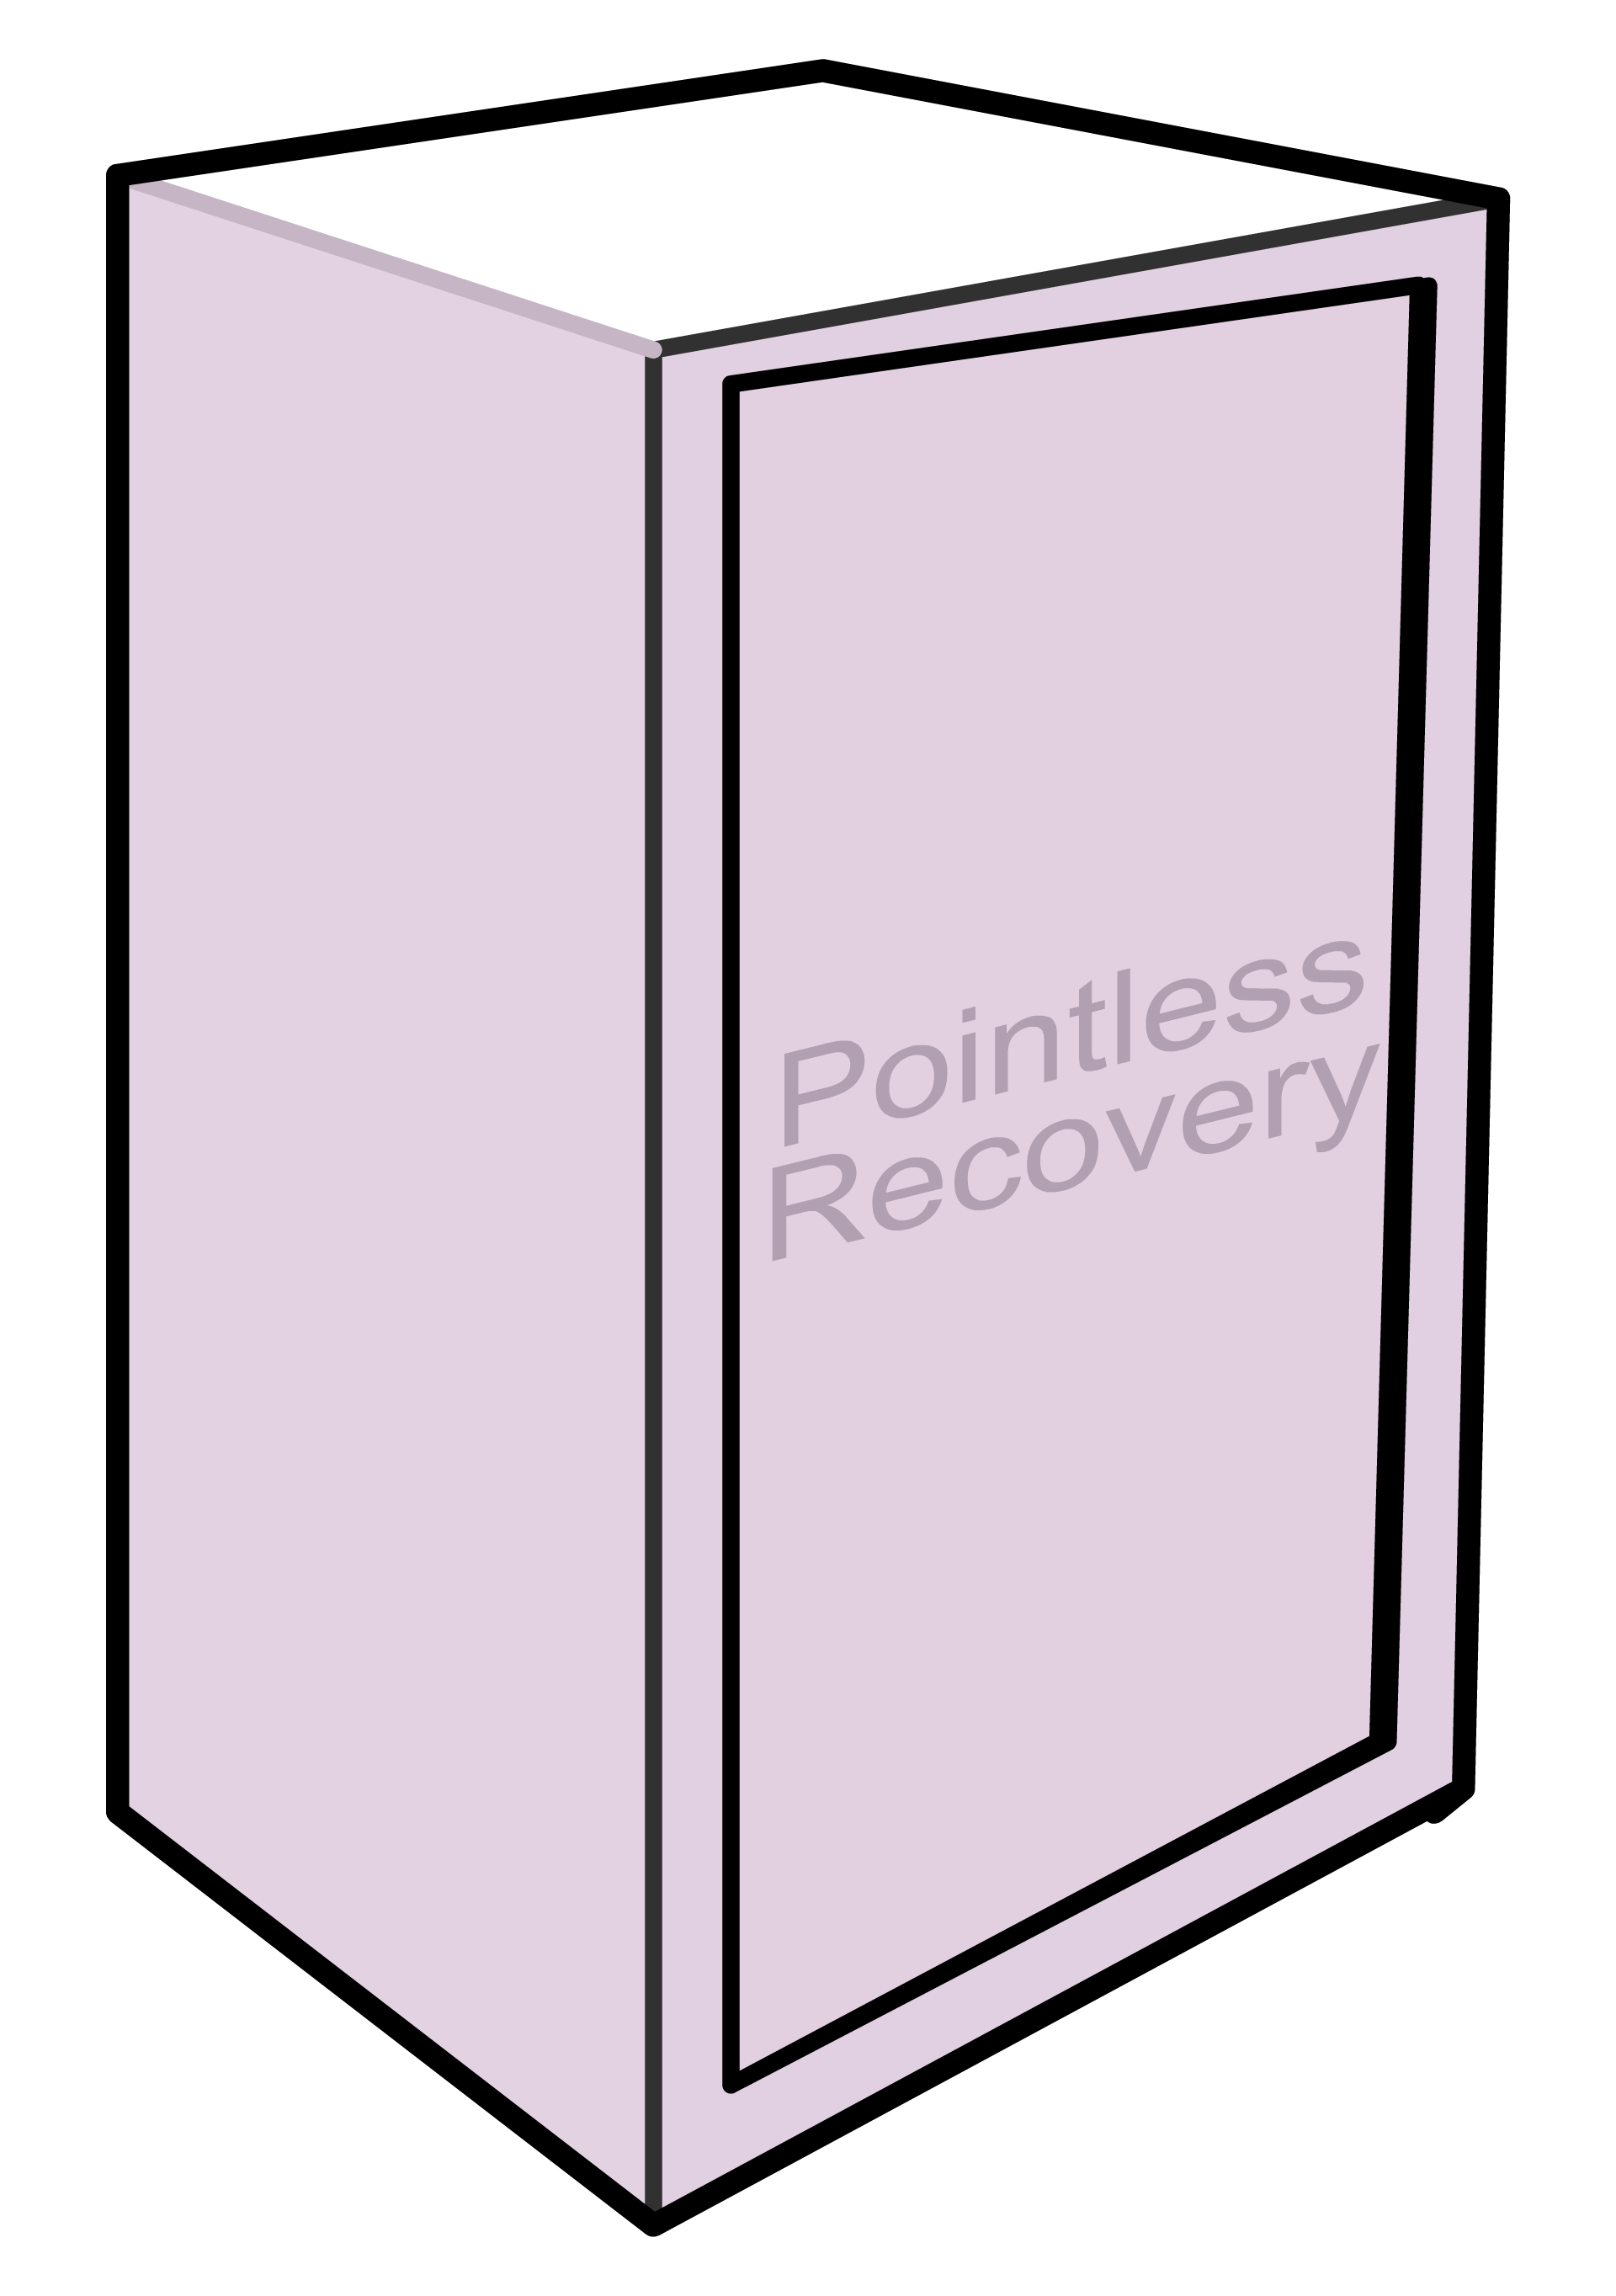 Pointlessrecovery